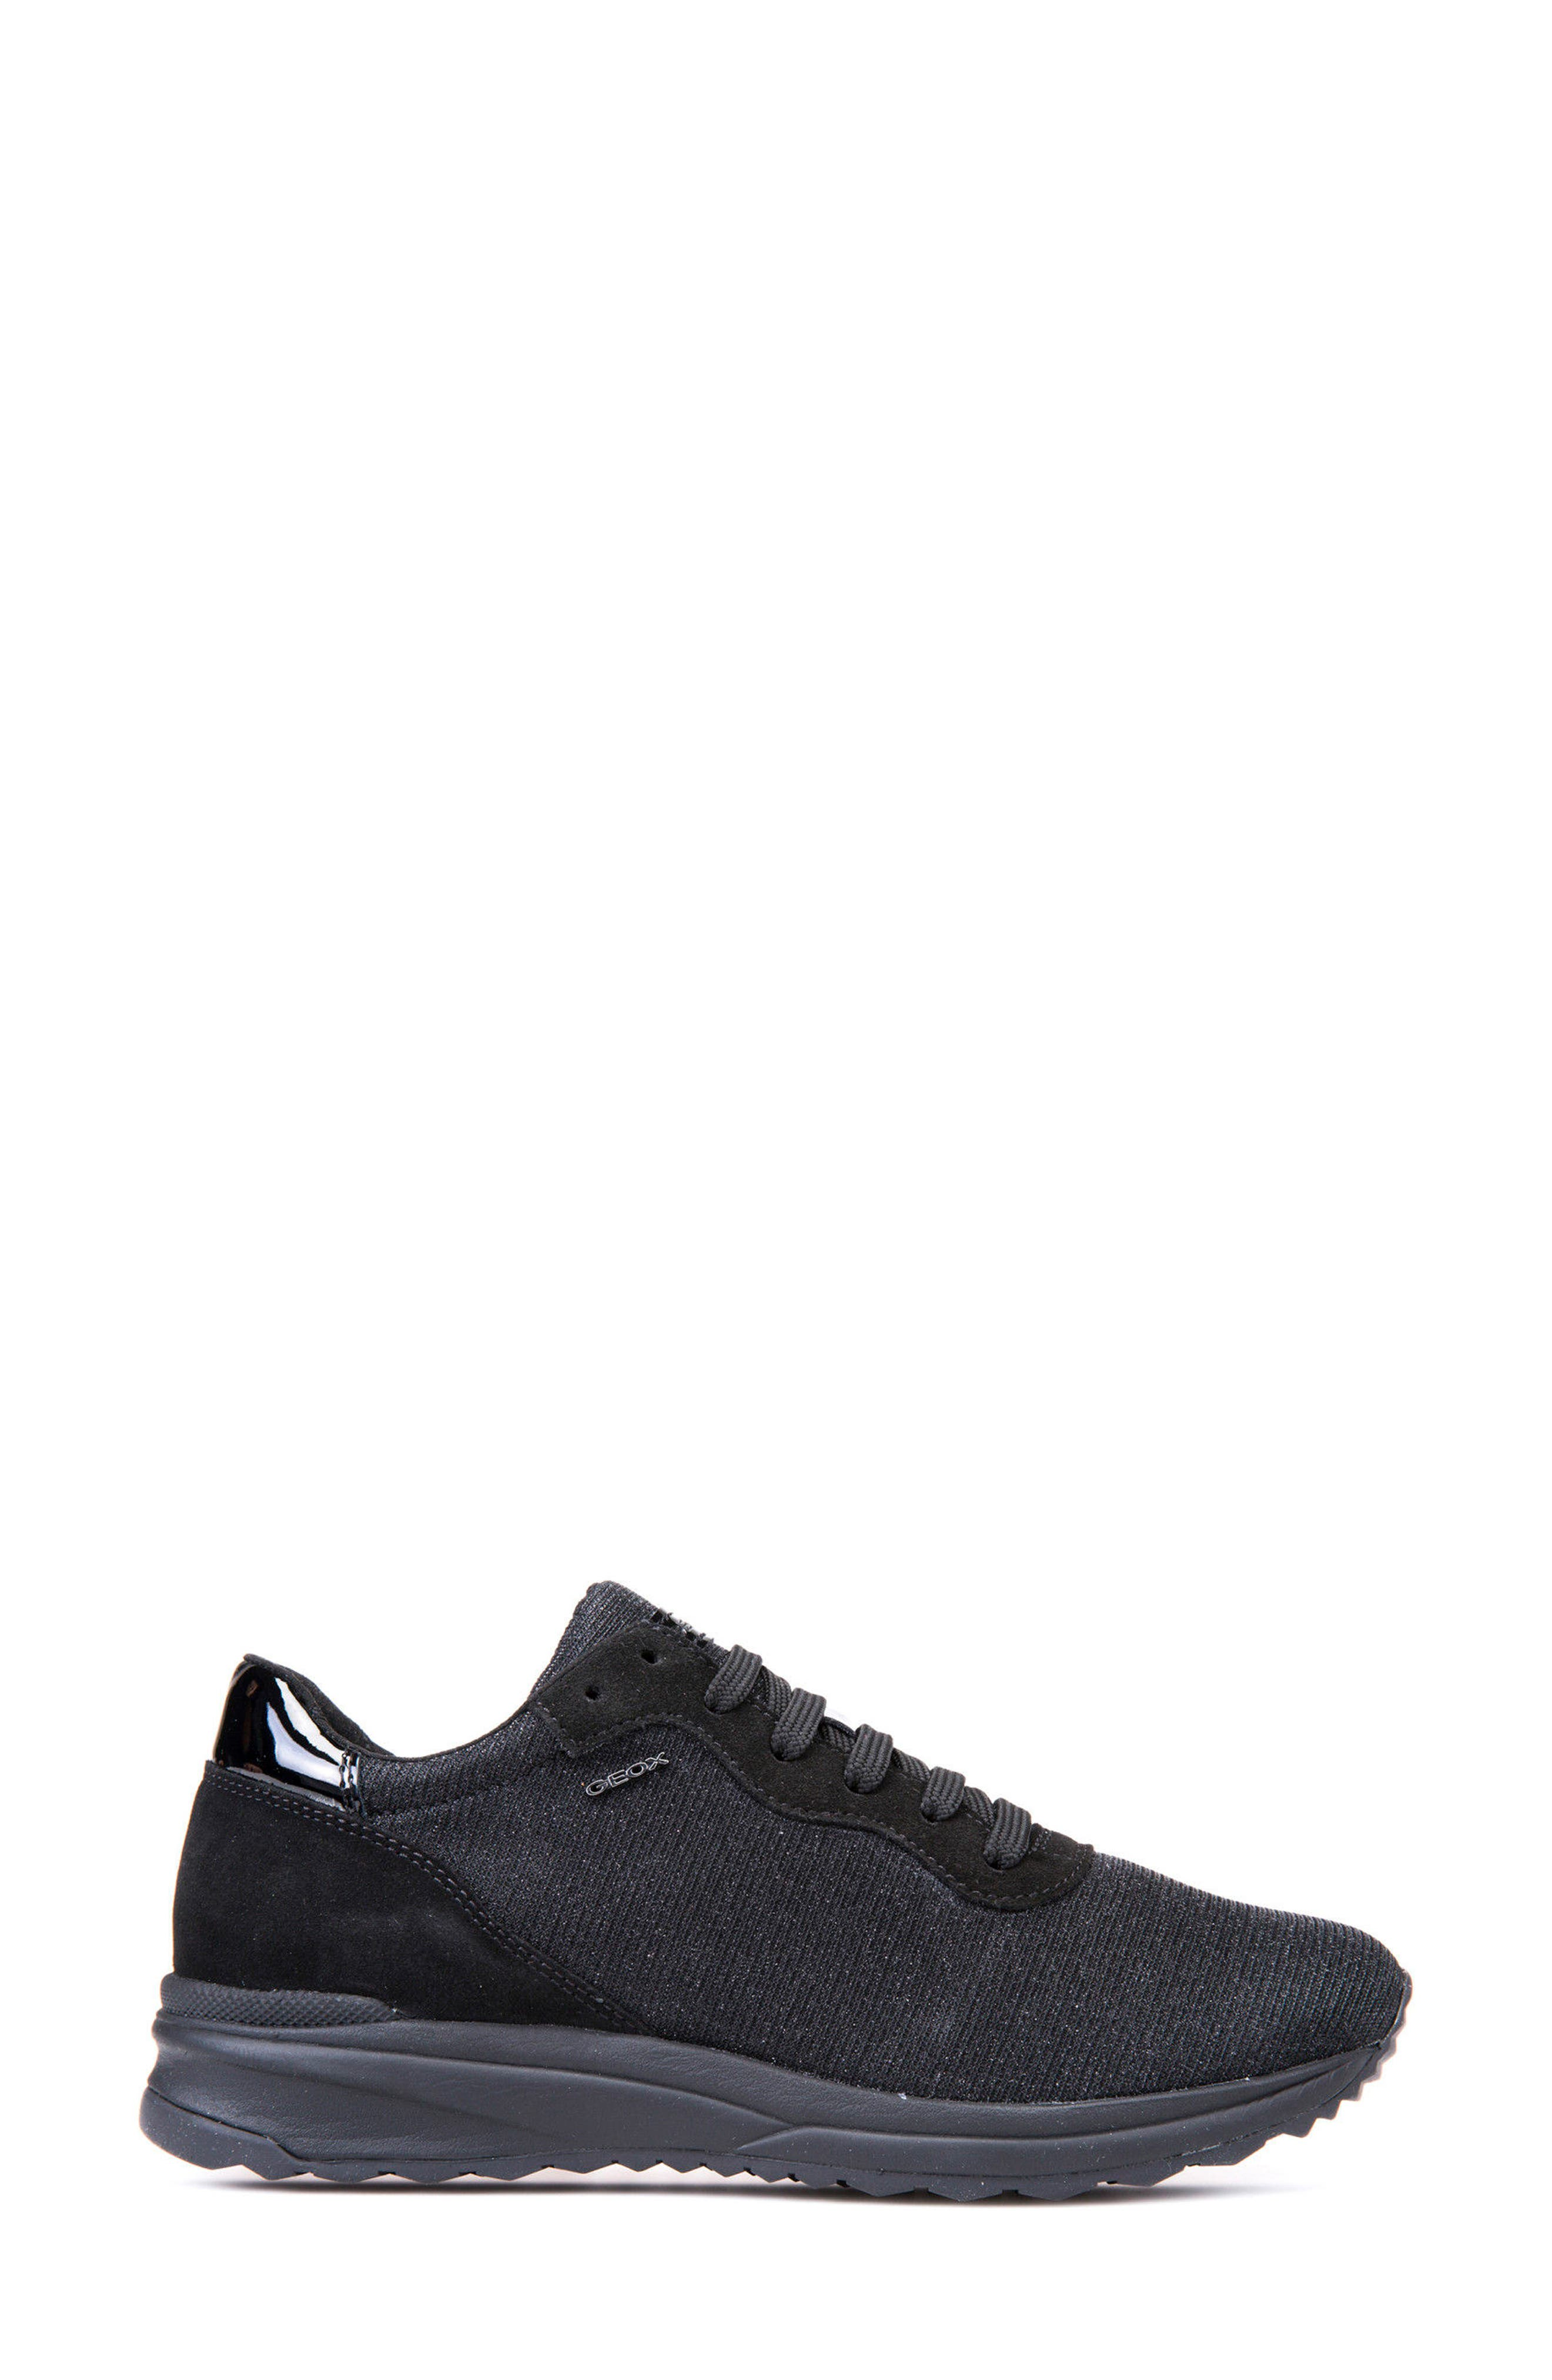 Airell Sneaker,                             Alternate thumbnail 3, color,                             Black Fabric